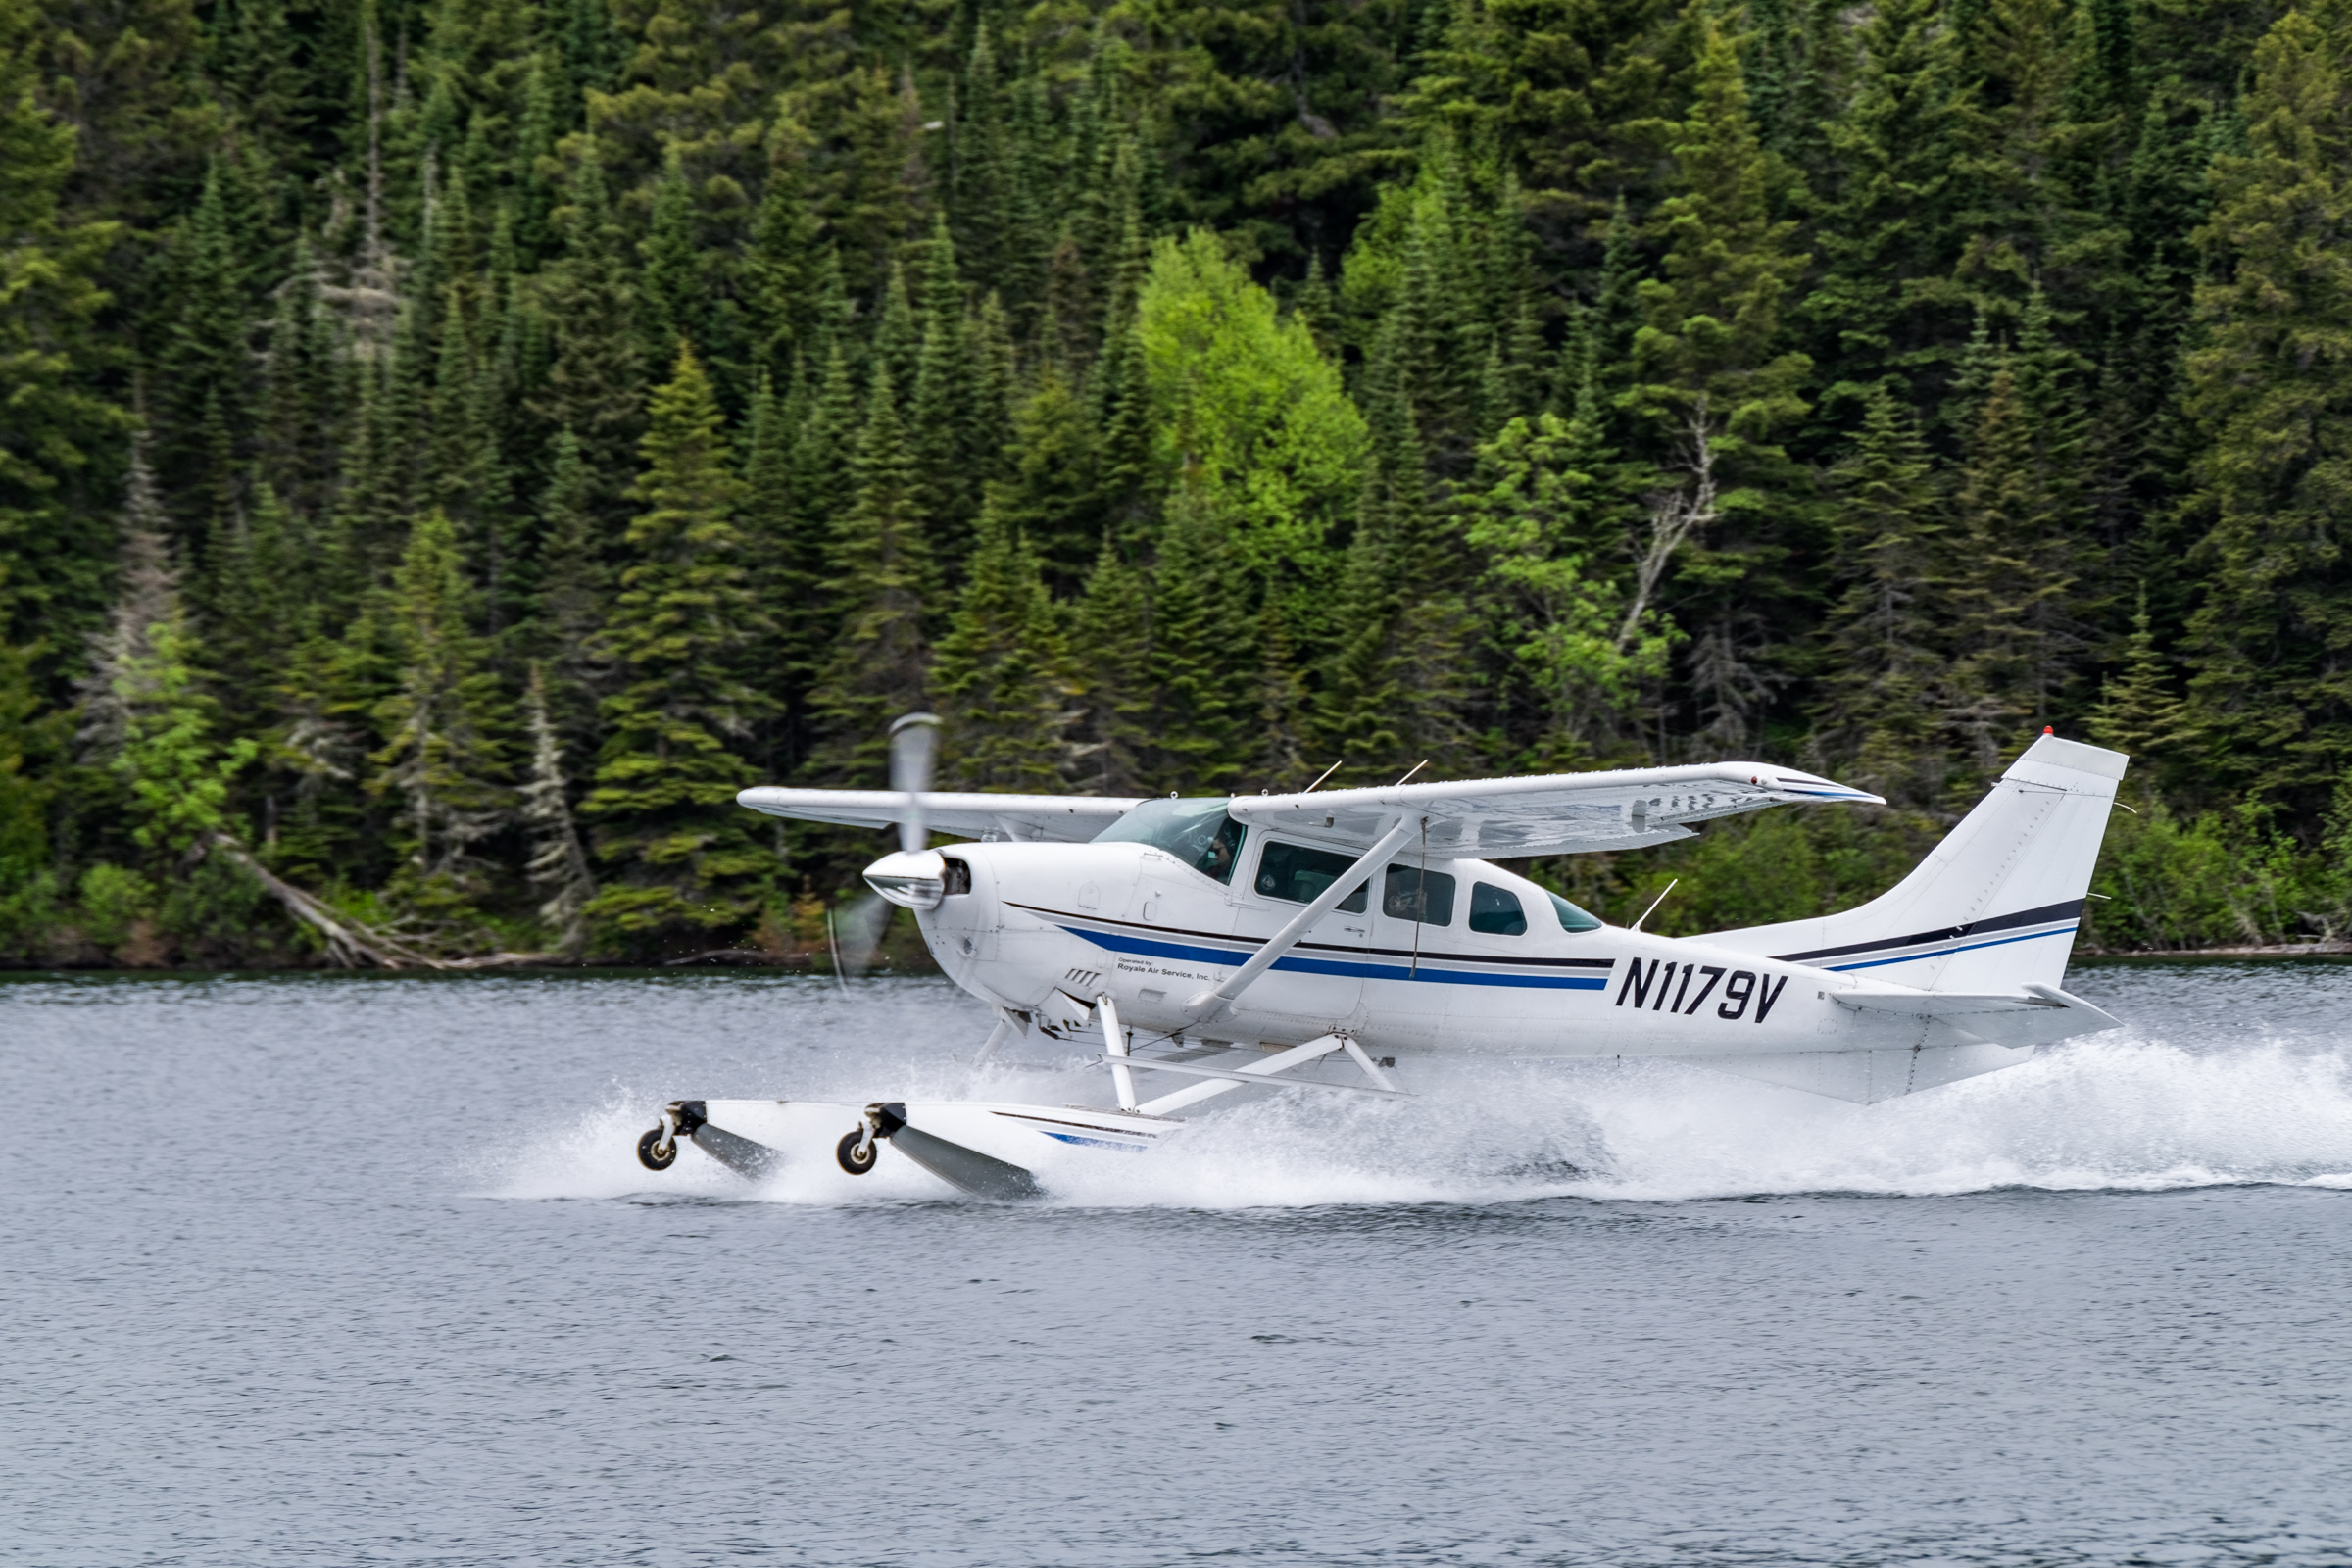 Our ride to Isle Royale with Isle Royale Seaplanes.